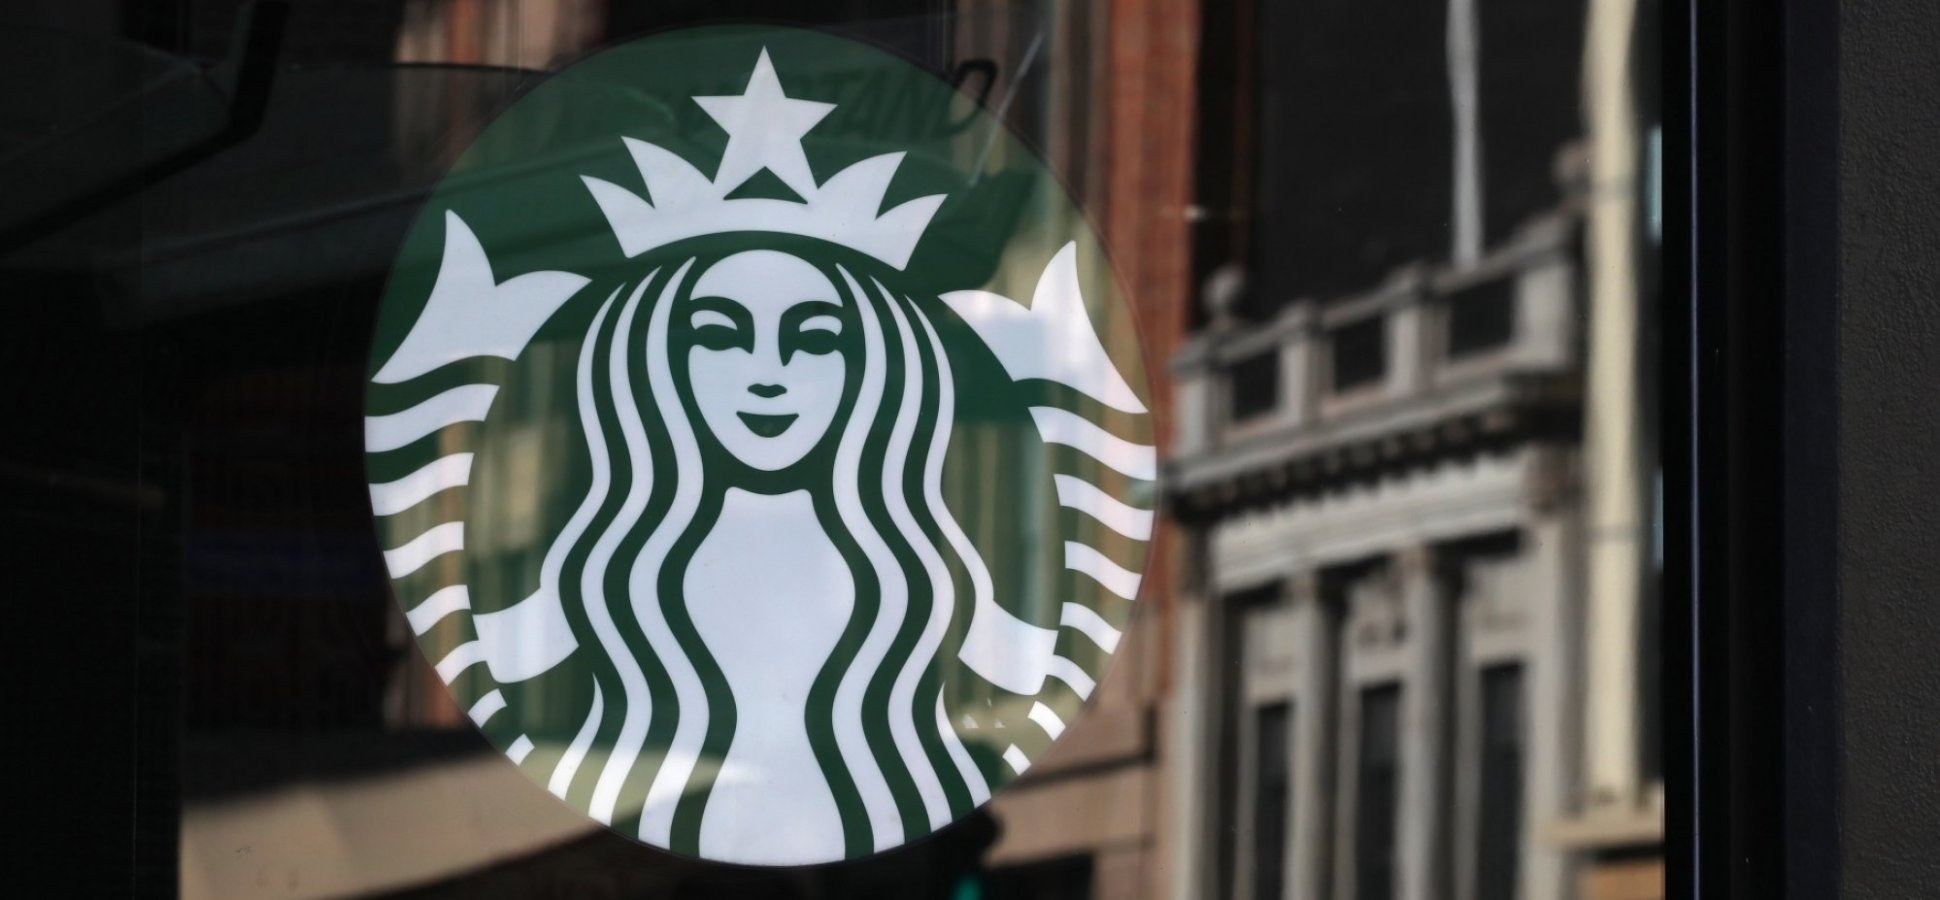 Starbucks Just Made a Huge Decision That's Making Its Best Customers Very Angry